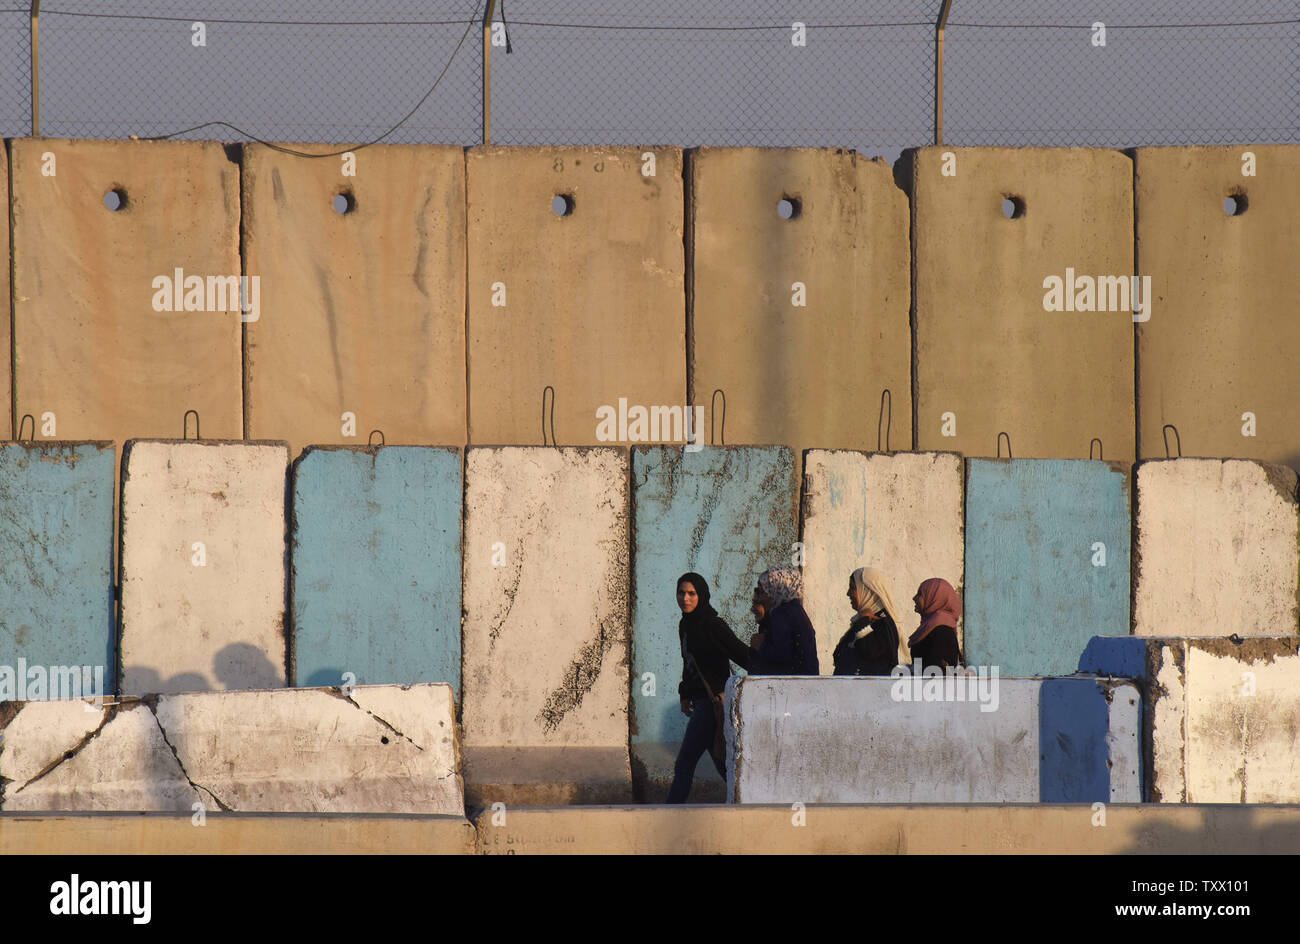 Palestinians walk past concrete barriers to cross the Qalandiya checkpoint, West Bank, to pray at the Al-Aqsa Mosque in Jerusalem, on the last Friday of the Muslim holy month of Ramadan, June 8, 2018.  Photo by Debbie Hill/UPI - Stock Image